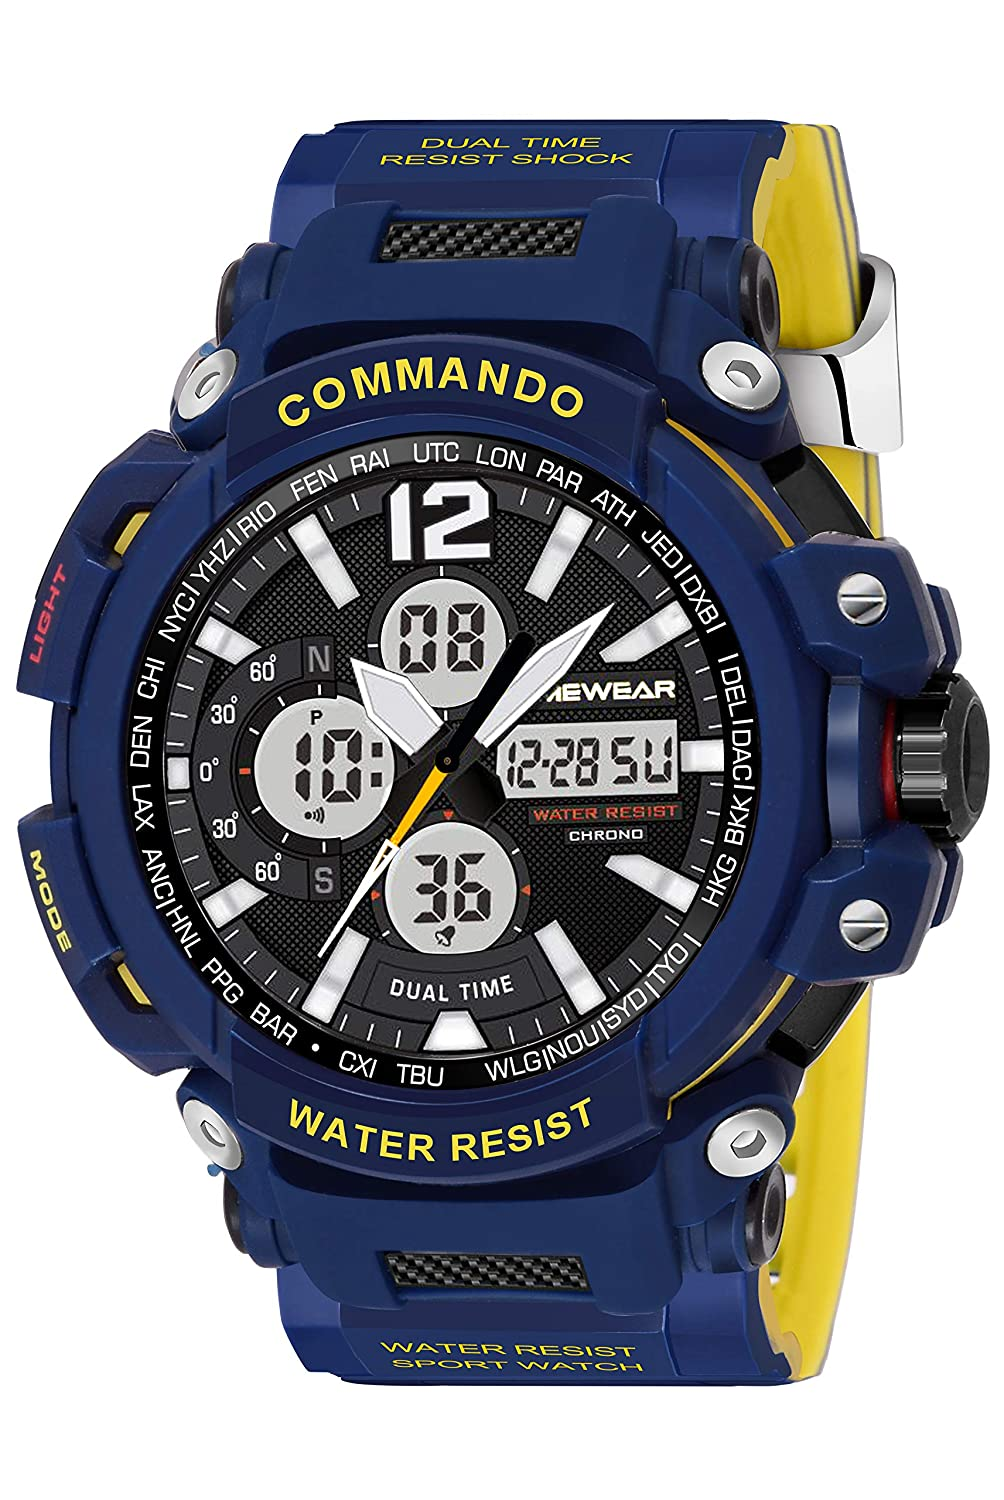 TIMEWEAR best sports watches for men in India